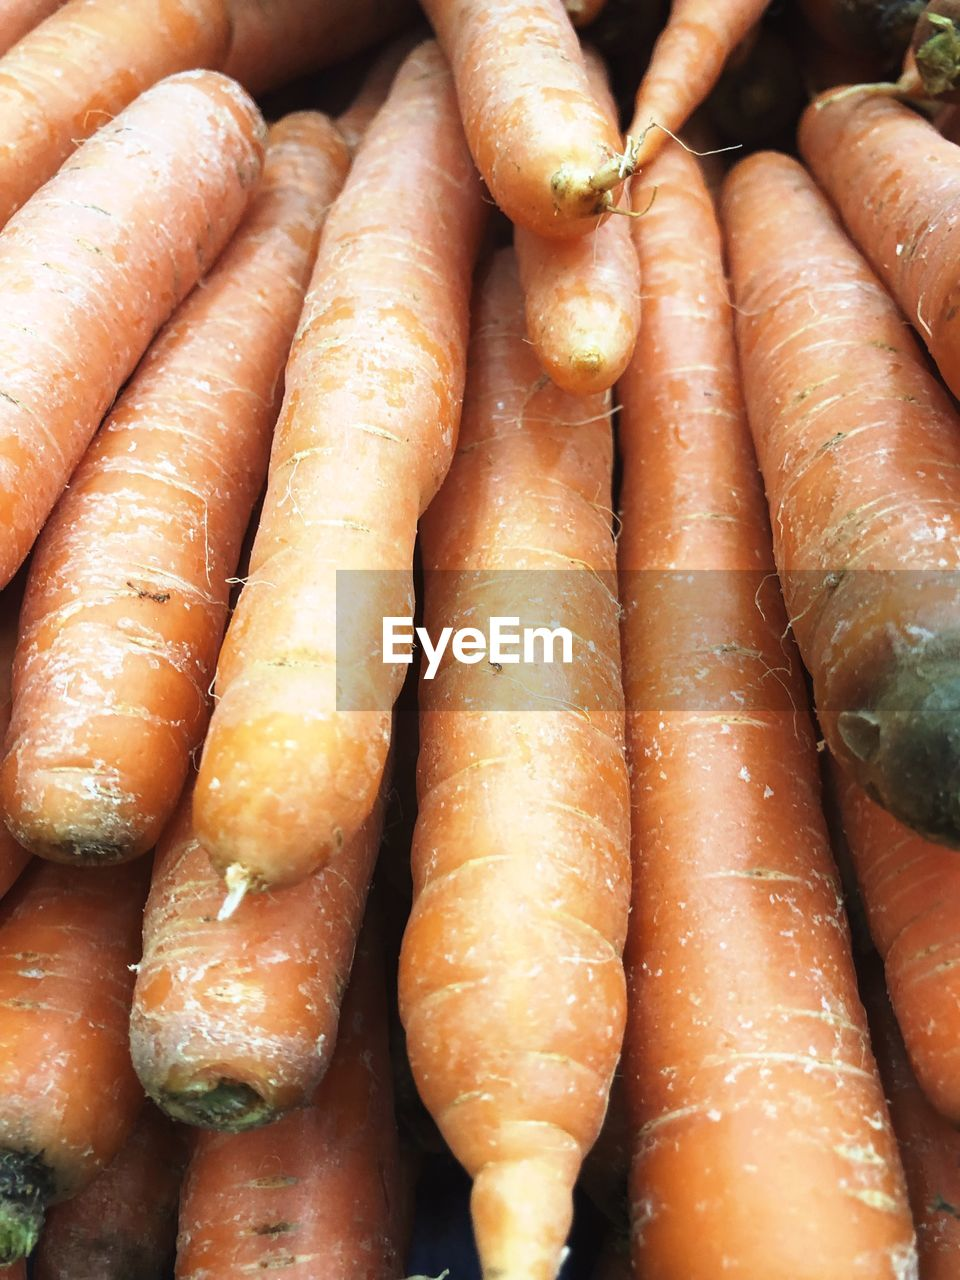 food and drink, food, freshness, healthy eating, carrot, root vegetable, still life, wellbeing, vegetable, close-up, backgrounds, no people, full frame, indoors, high angle view, orange color, for sale, large group of objects, abundance, sausage